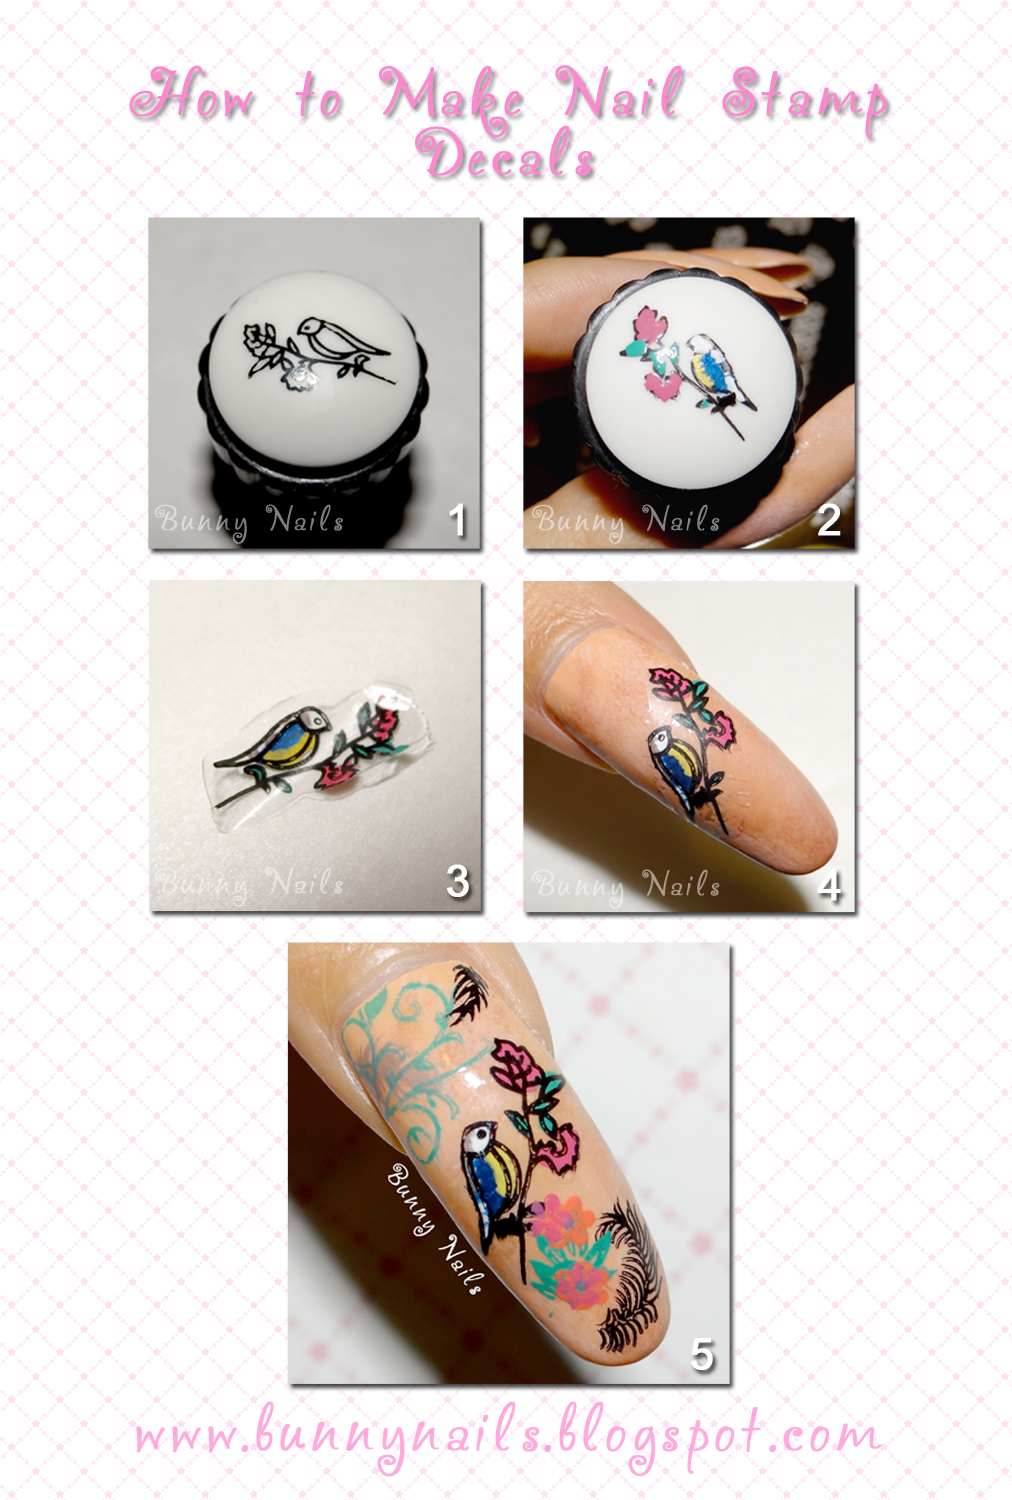 color nail polish: How to do Nail Stamp Decals